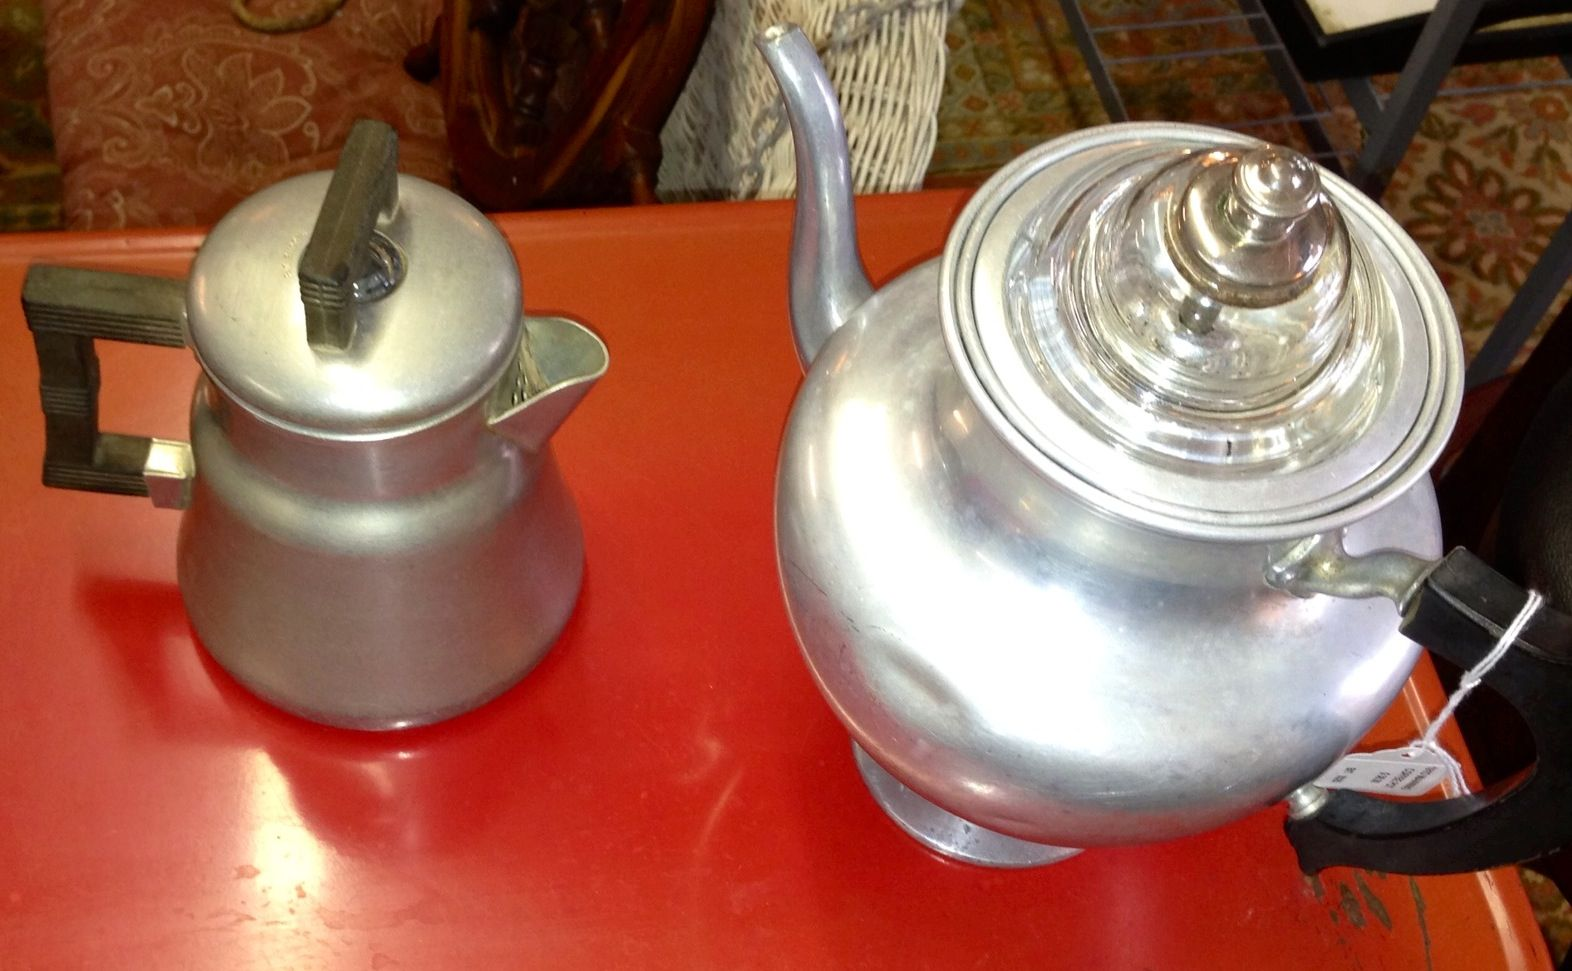 percolators in greensboro ga antique store Percolators